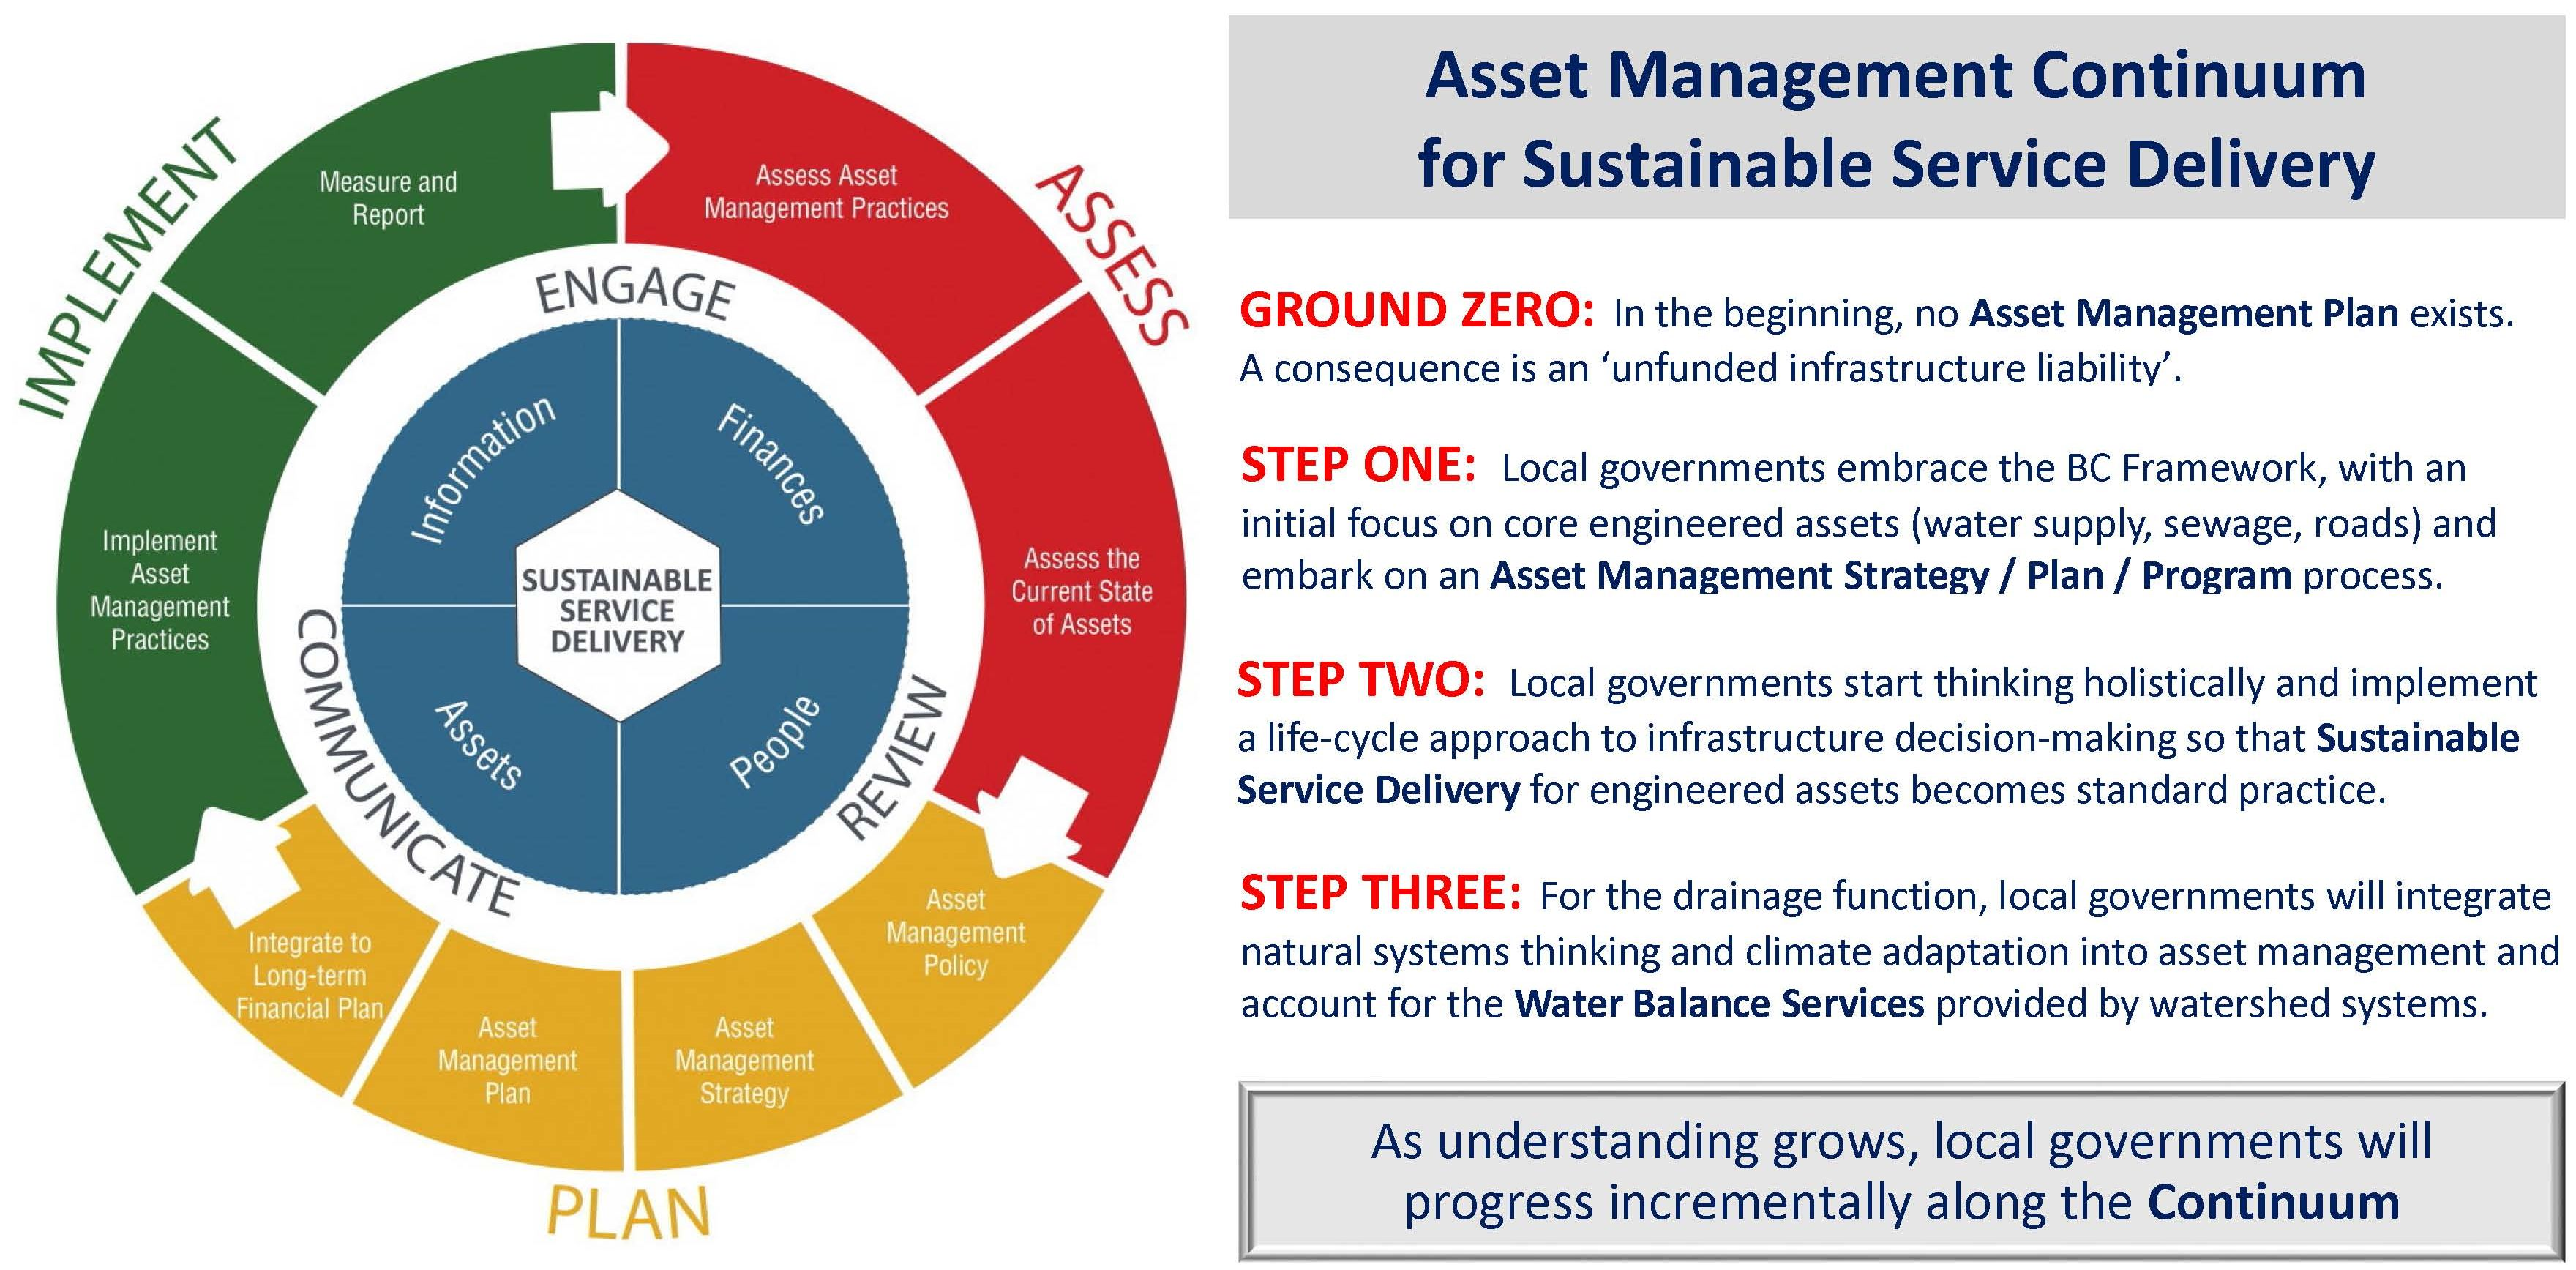 DOWNLOAD: http://waterbucket.ca/wscblog/files/2015/01/Asset-Management-for-Sustainable-Service_Delivery_A-Framework_for_BC_Dec-2014_short-version.pdf